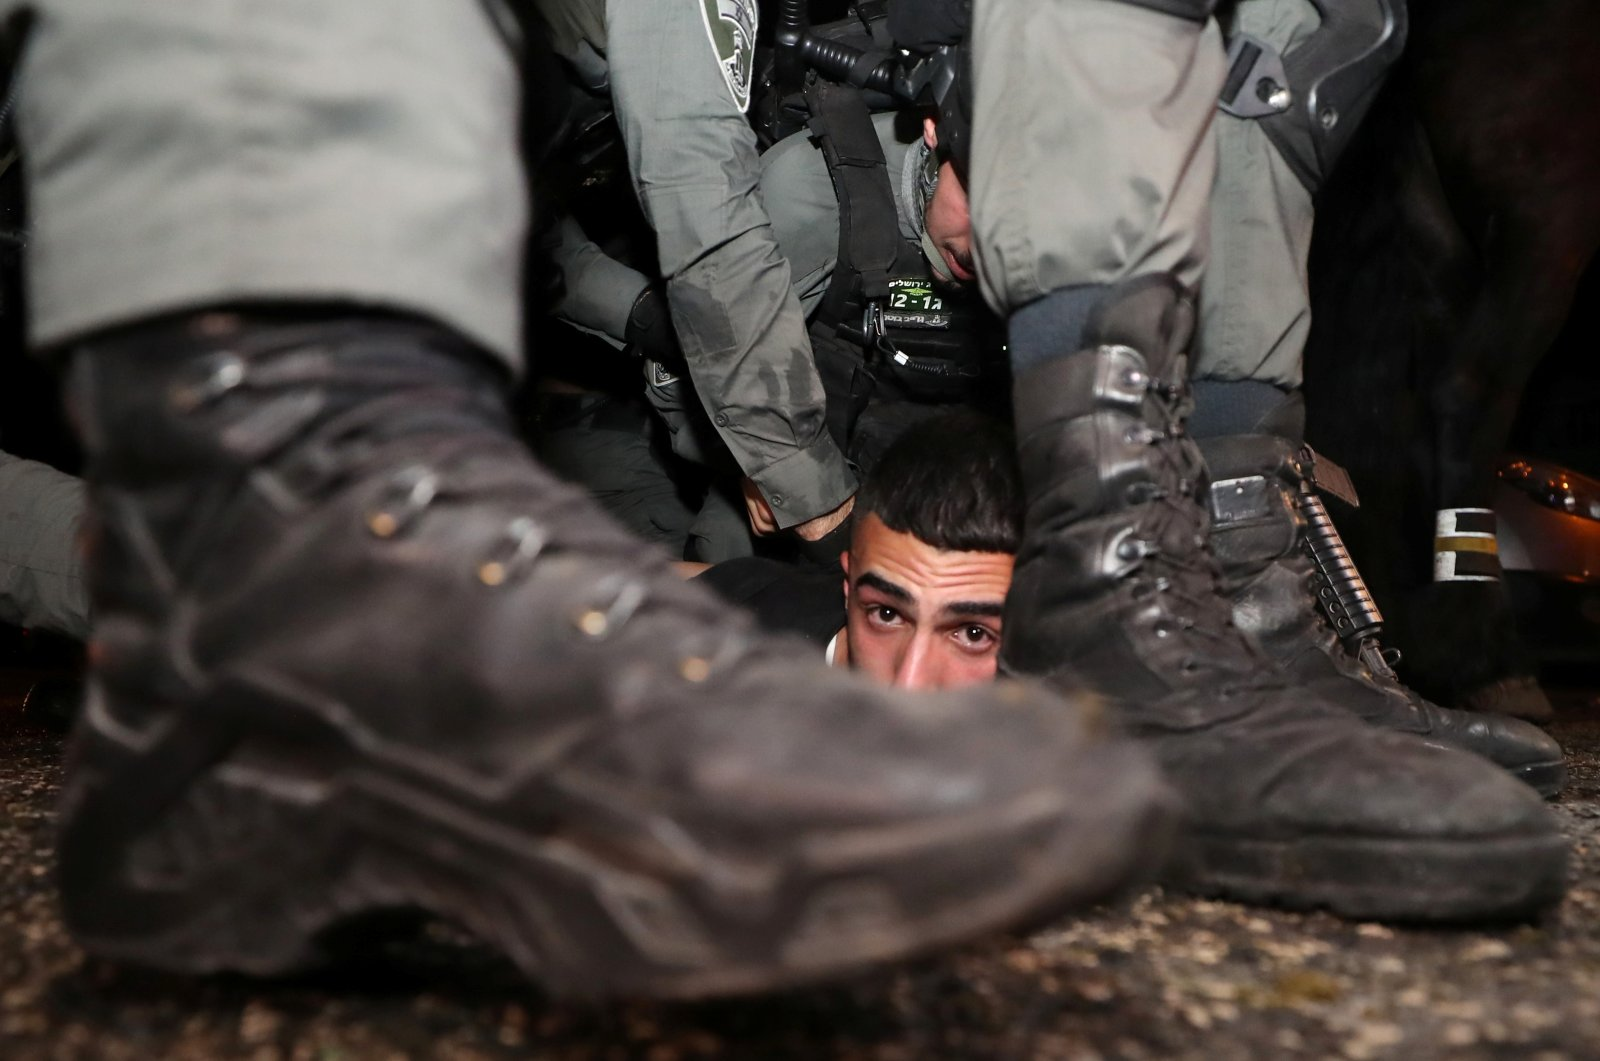 Israeli police detain a Palestinian amid ongoing tension and Israel's forced expulsion of Palestinians living in the Sheikh Jarrah neighbourhood of East Jerusalem, Palestine, May 5, 2021. (Reuters Photo)